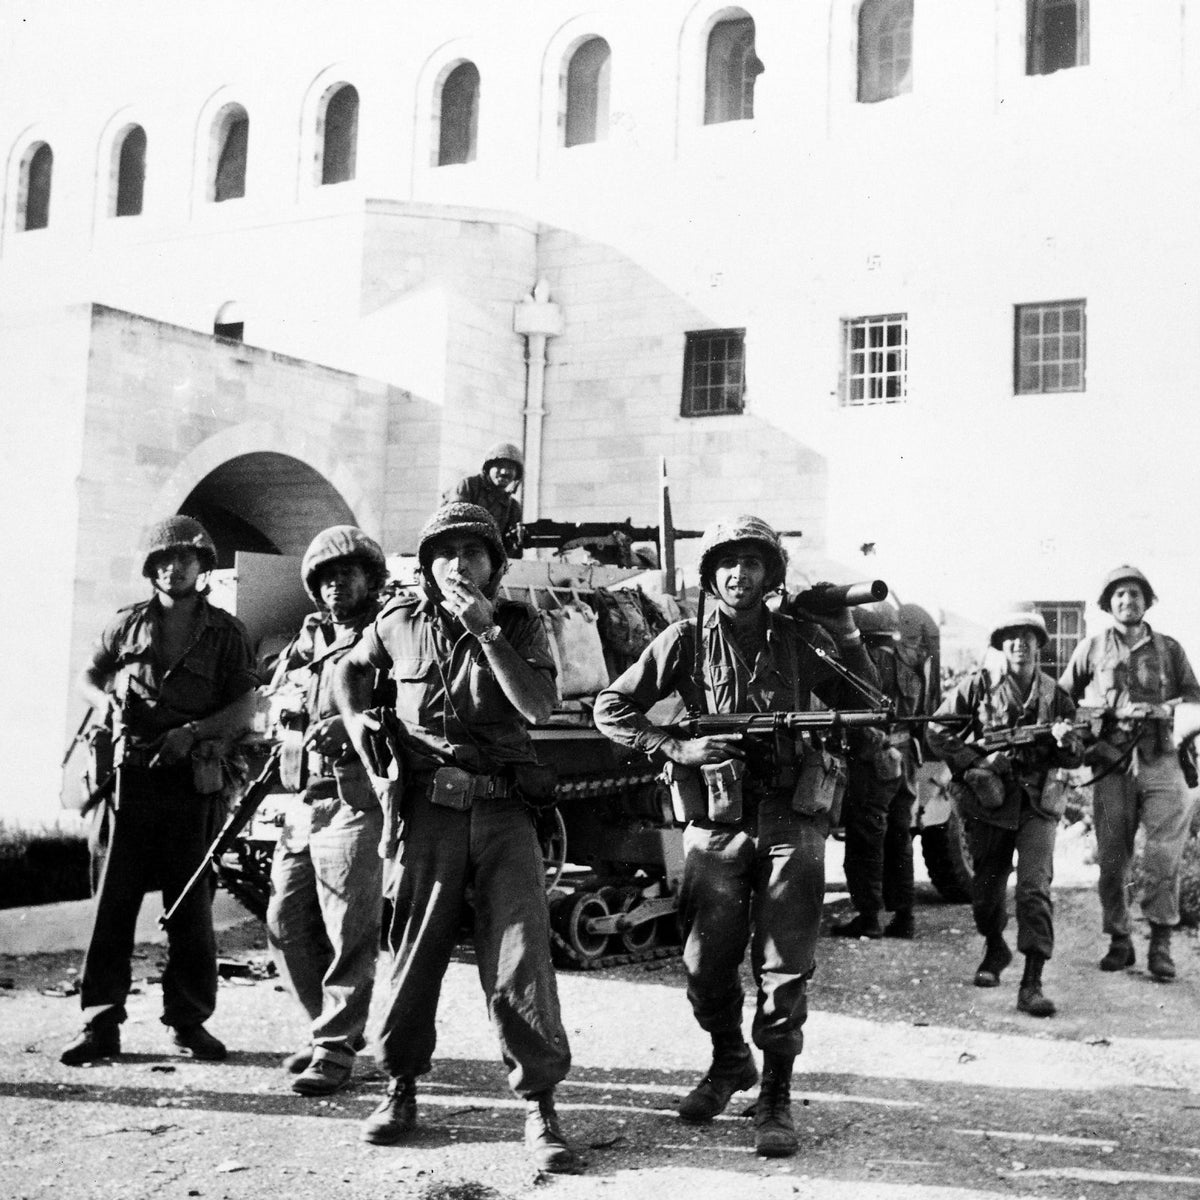 Israeli troops at Government House in the Old City of Jerusalem after taking over the Jordan-held part of the city following heavy fighting, June 6, 1967.